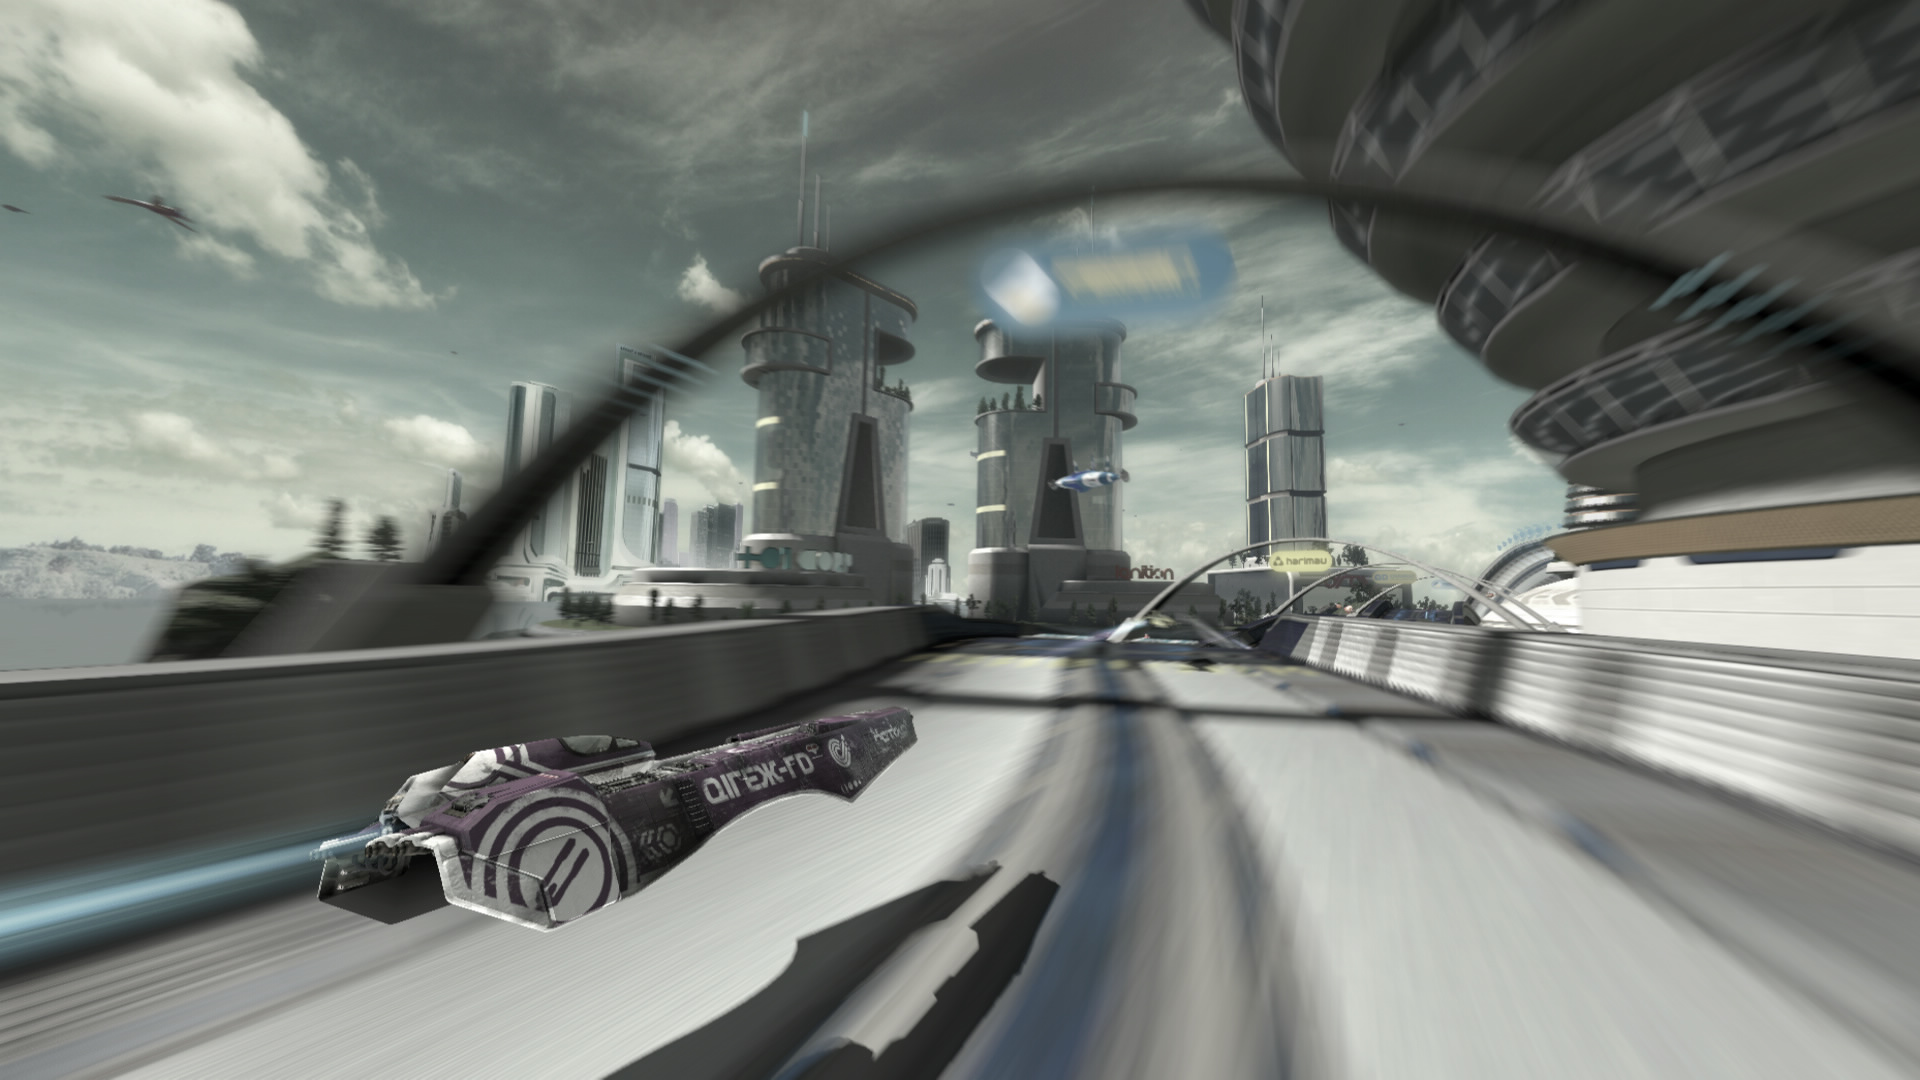 https://vignette.wikia.nocookie.net/wipeout/images/2/20/Wipeout-moa-therma-03.jpg/revision/latest?cb=20120305065047